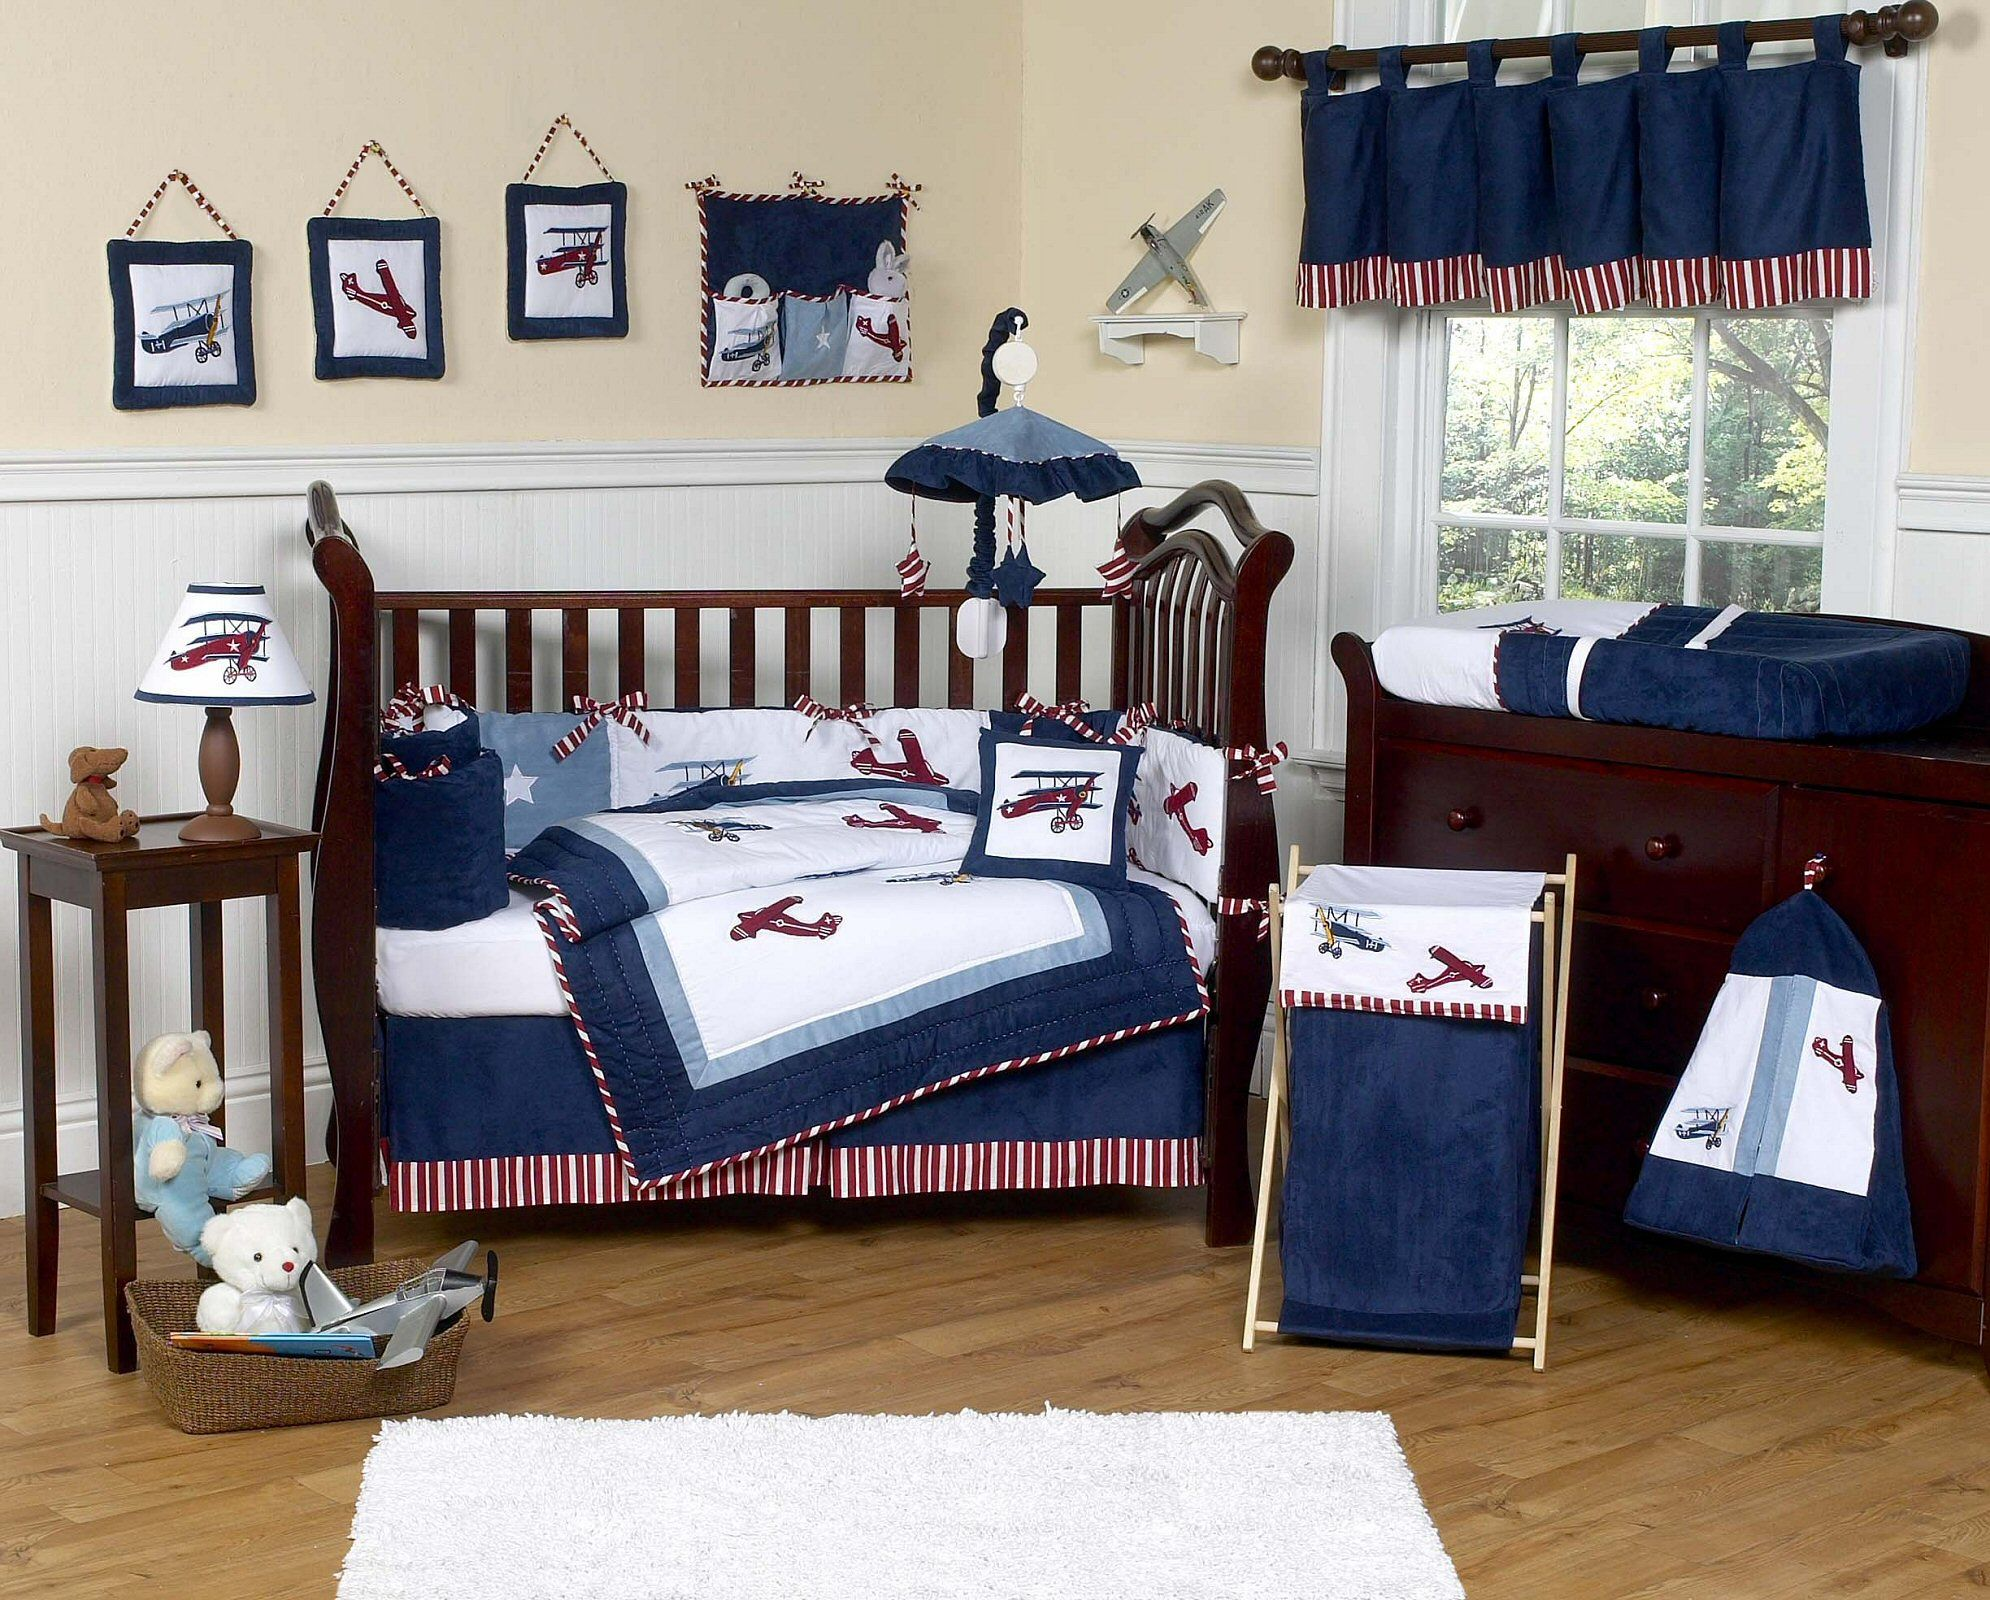 Vintage Airplane Baby Boy Crib Bedding Set 9pc Nursery Collection White Navy Blue